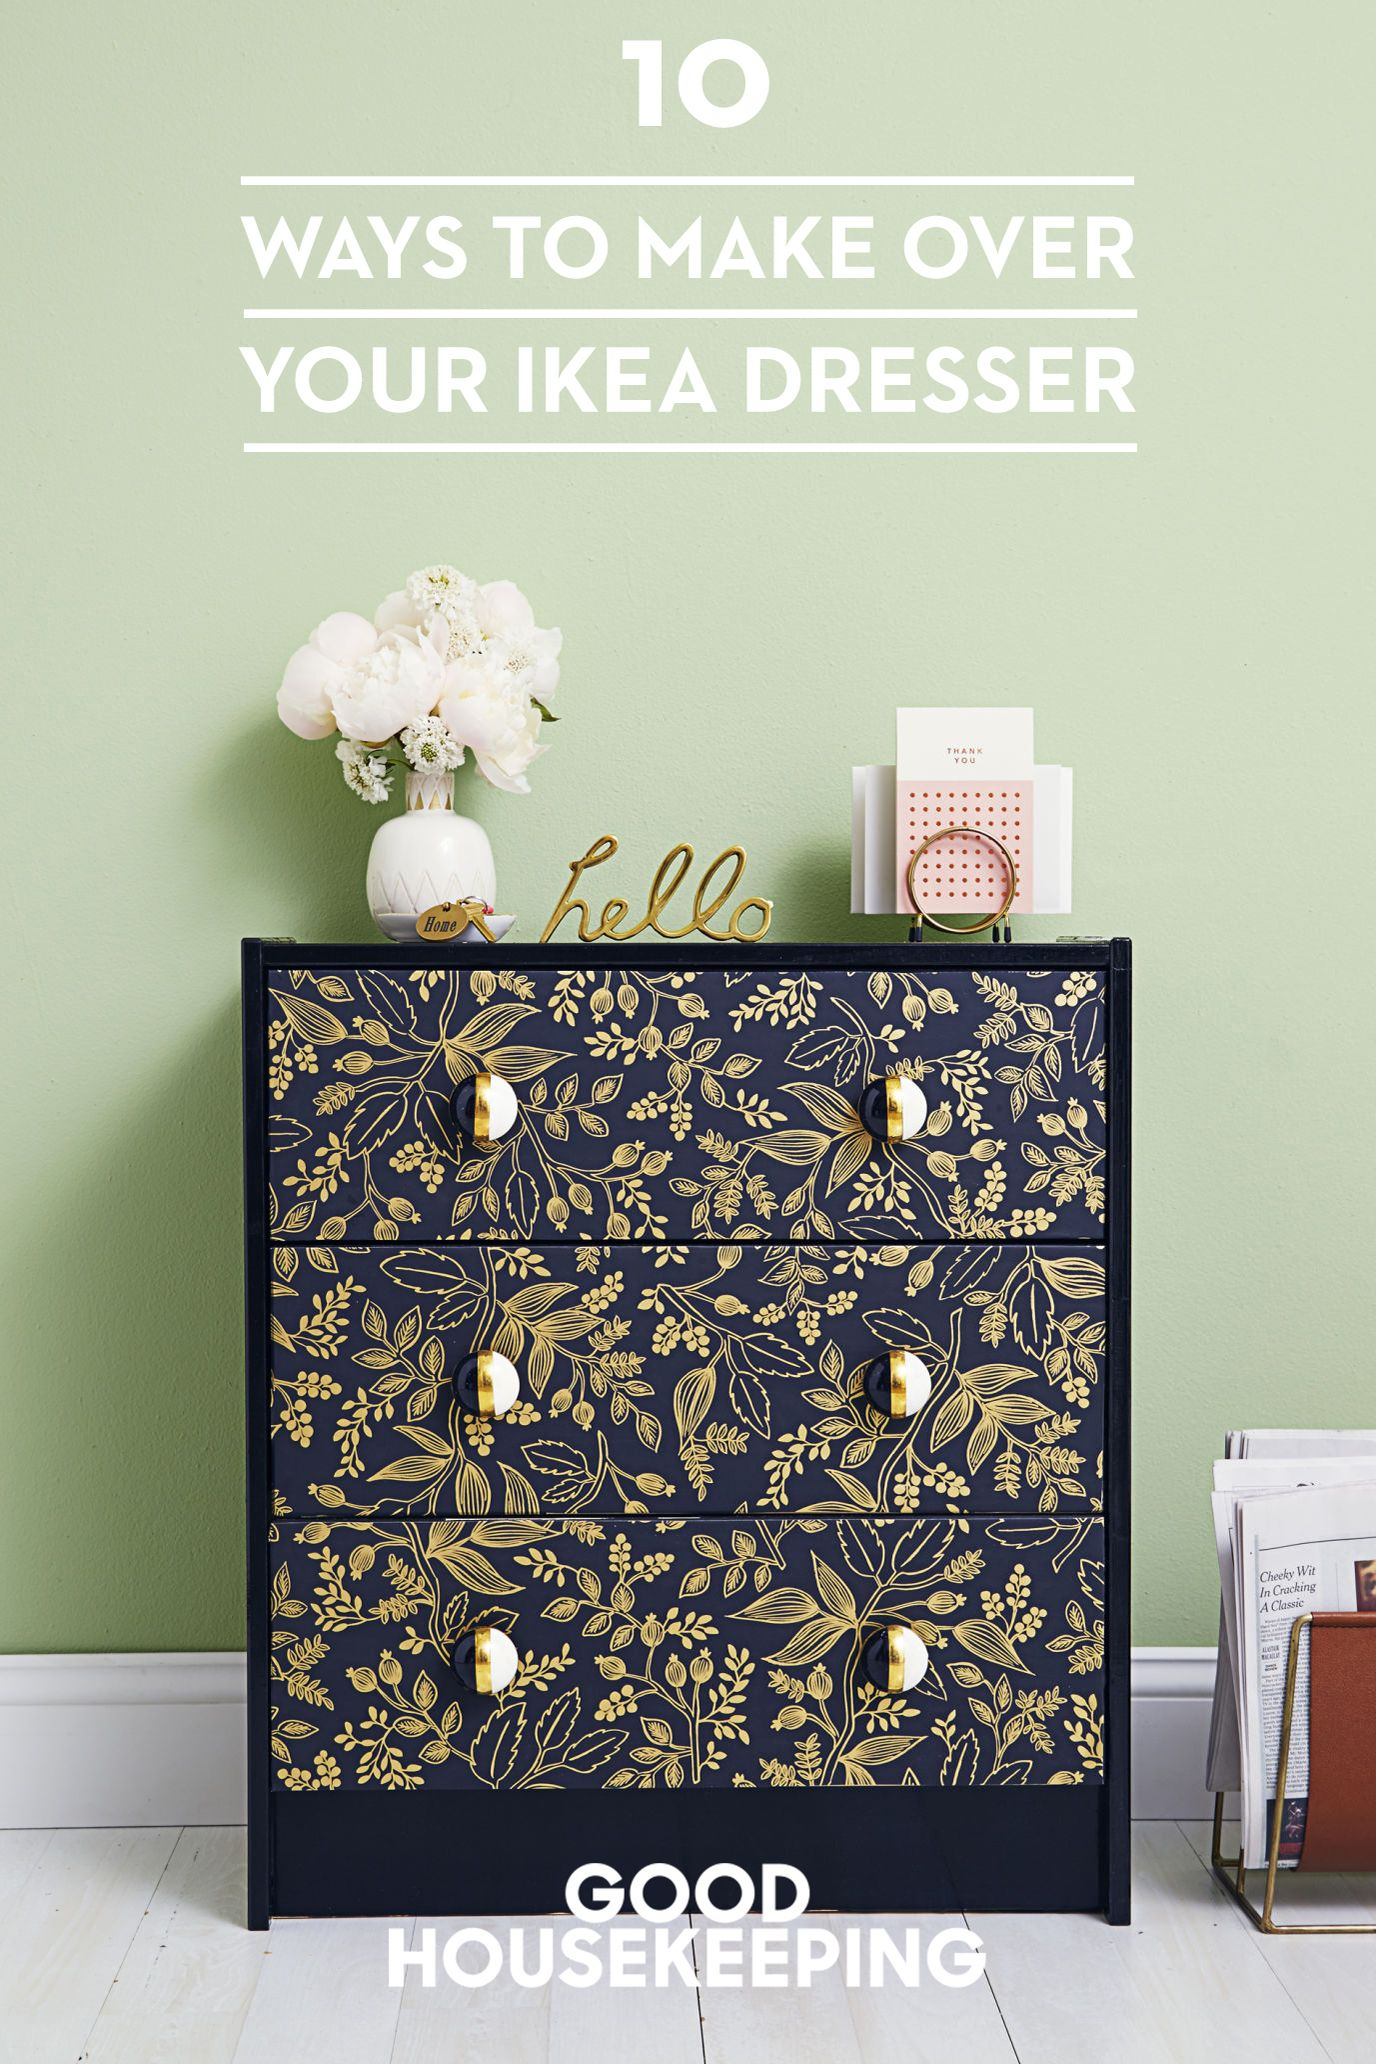 Ikea Rast Küche 10 Ways To Make Over Your Favorite Ikea Dresser Drawers